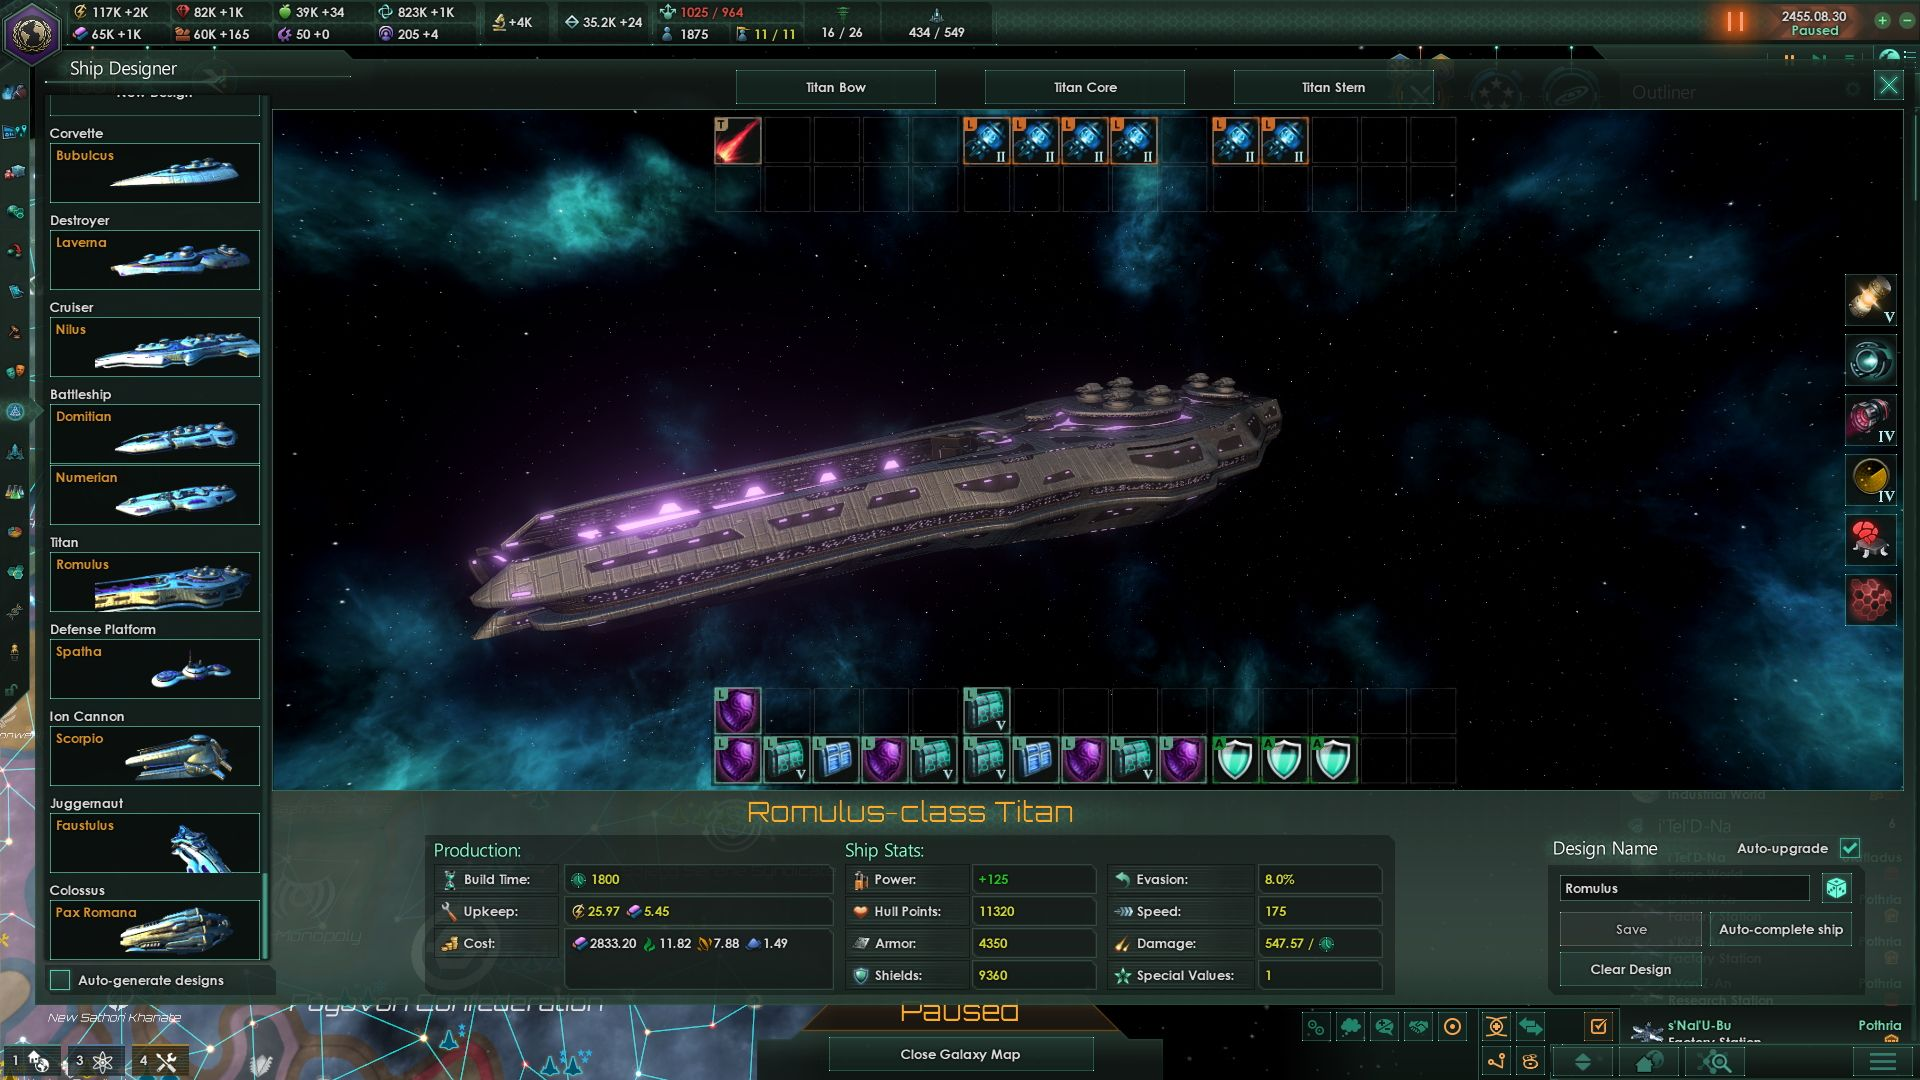 A Stellaris screenshot showing the ship designer UI. A large ship is surrounded by UI elements.